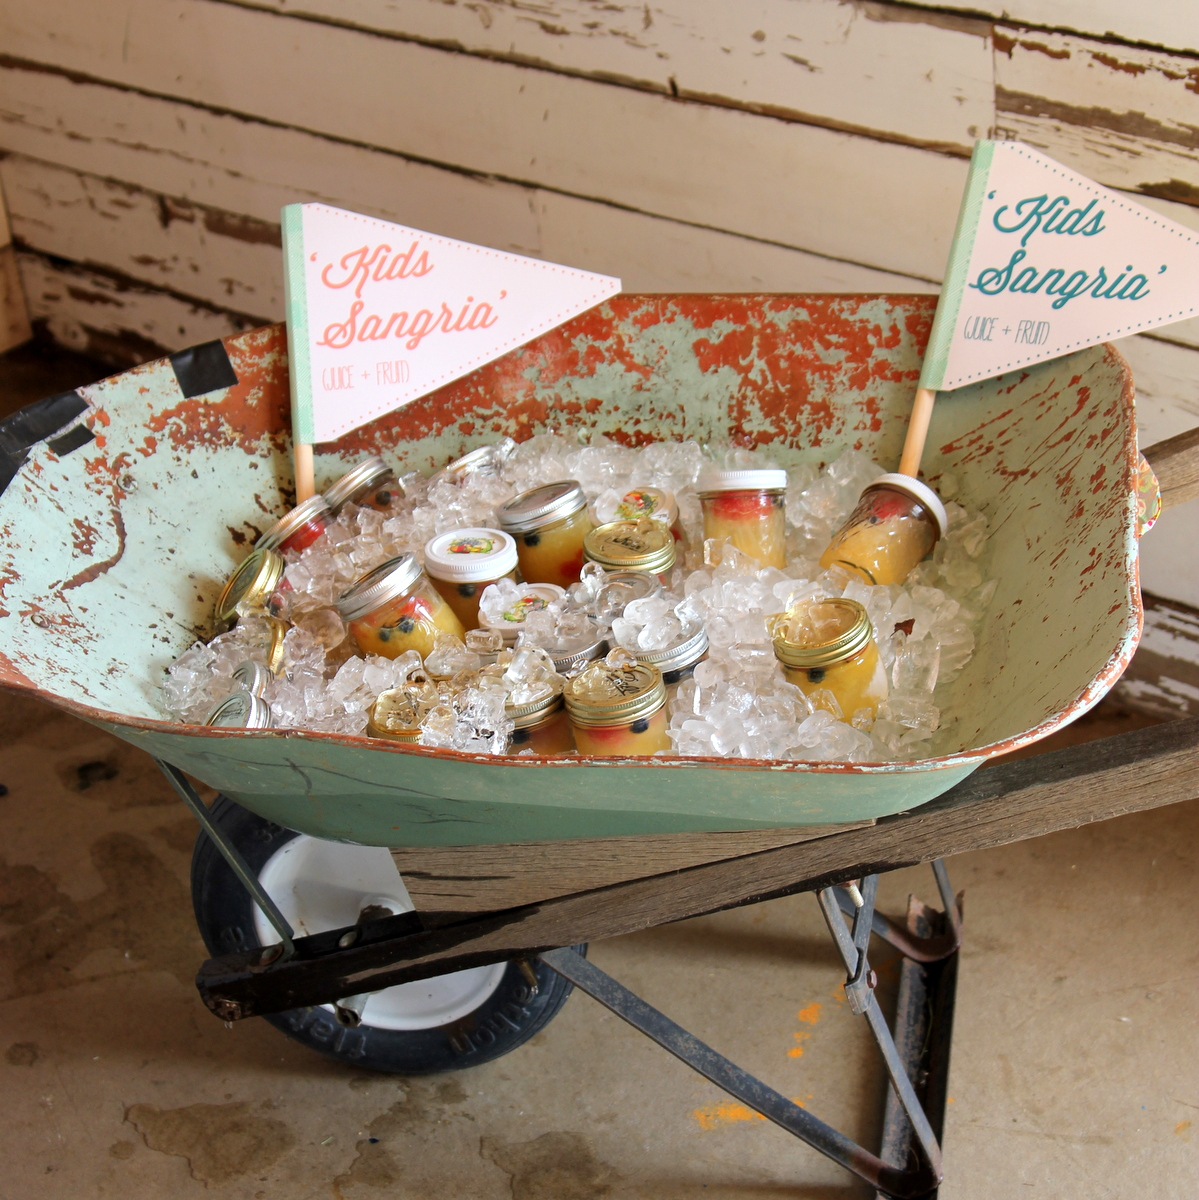 wheel barrel full of 'kid's sangria'